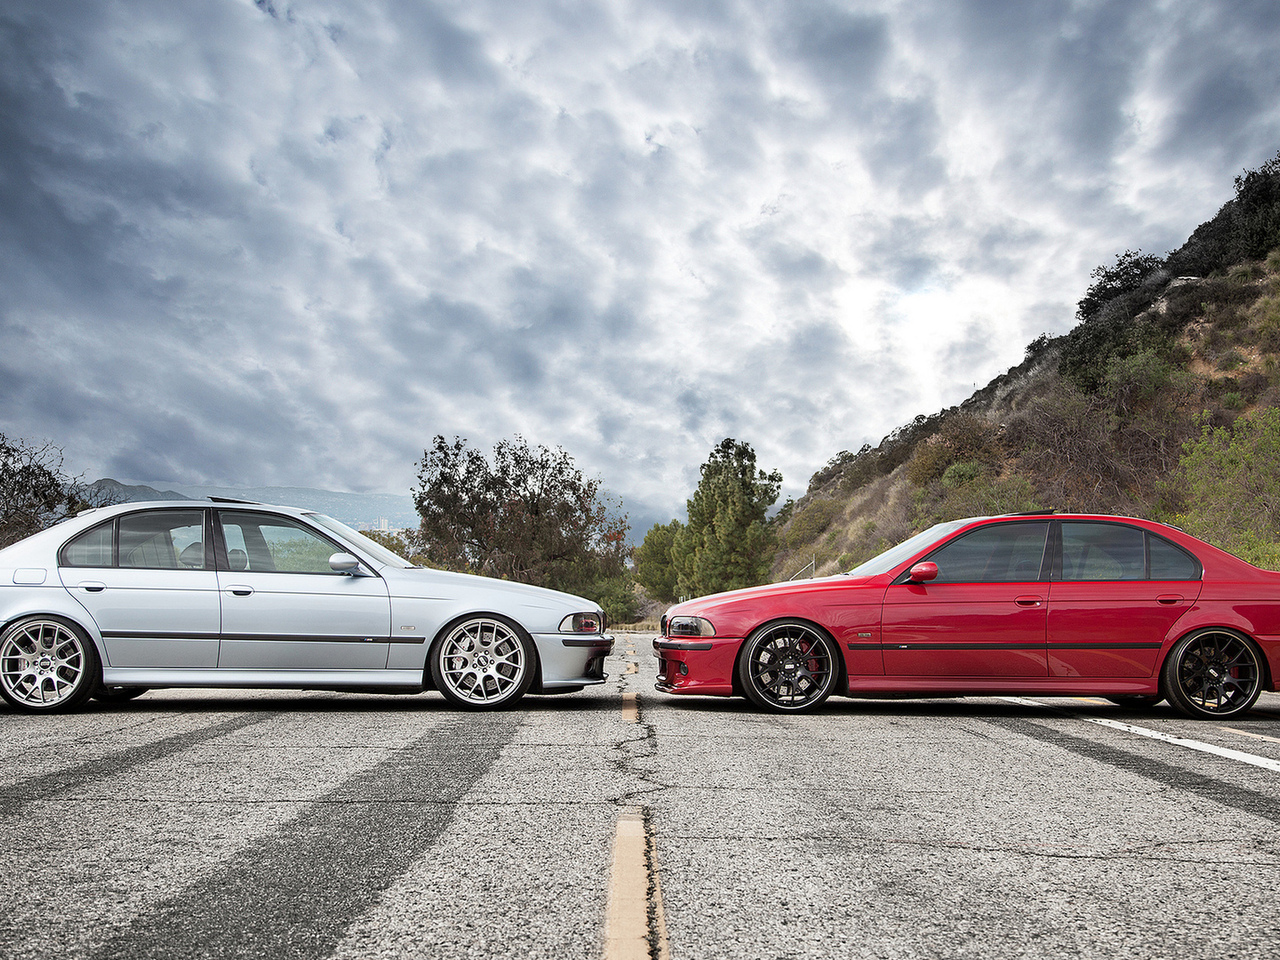 face to face, red, e39, bbs, красный, m5, blue, голубой, bmw, бмв, wheels